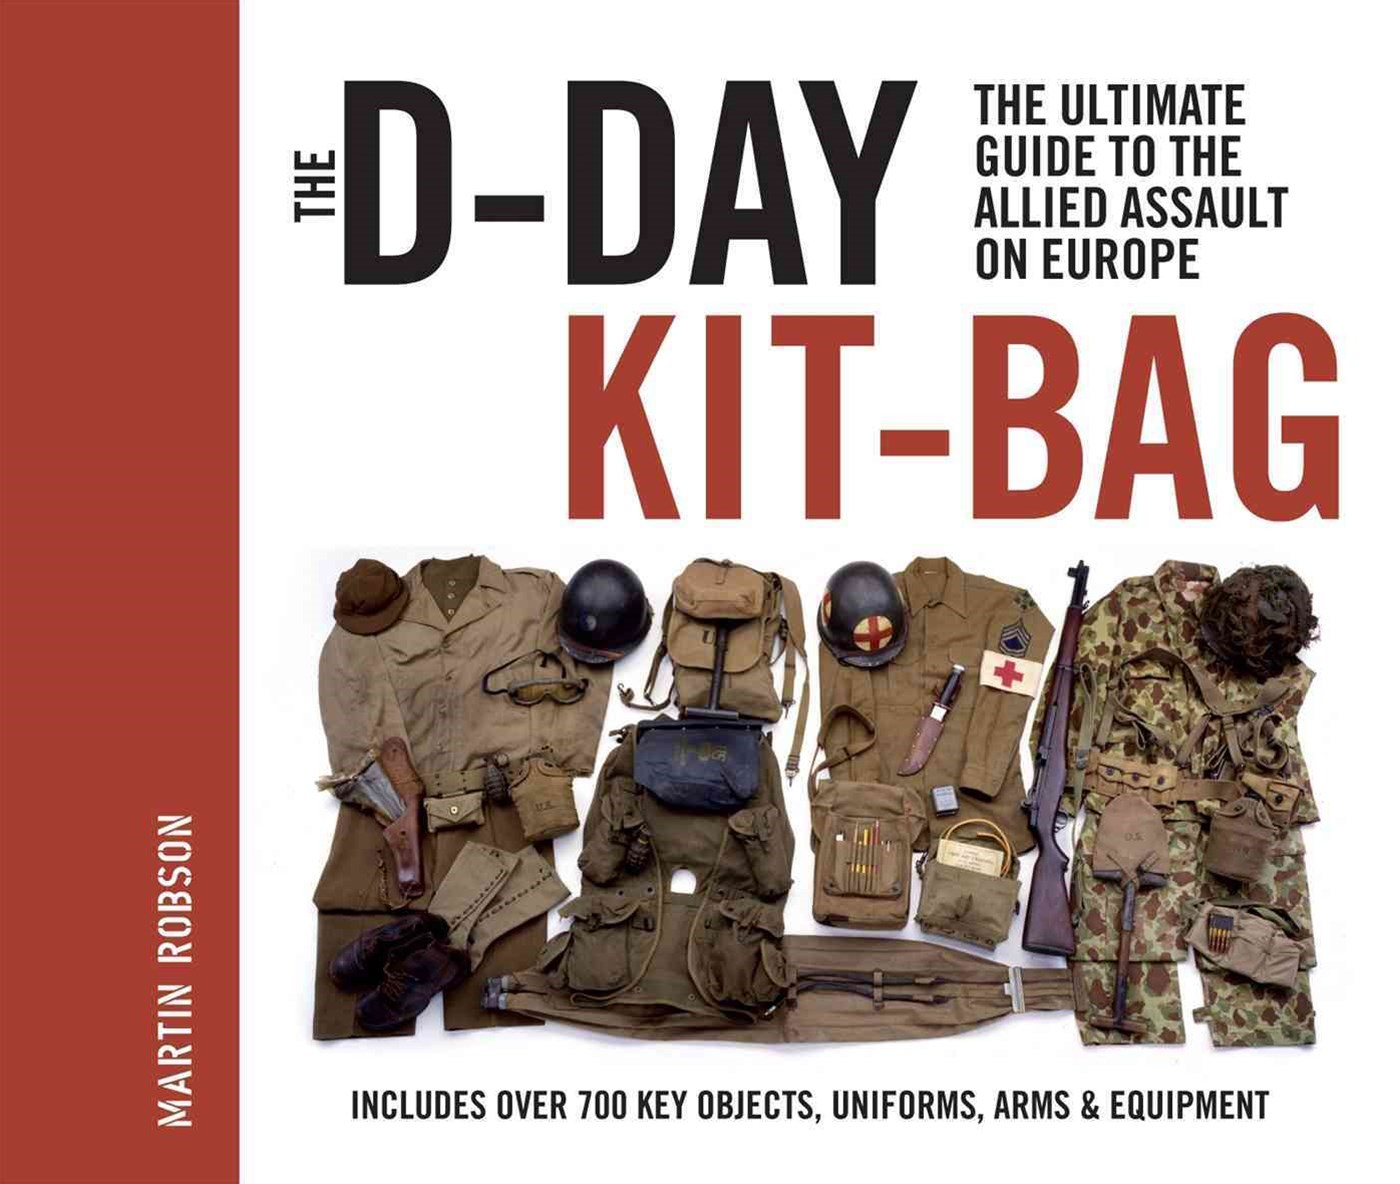 D-Day Kit-bag